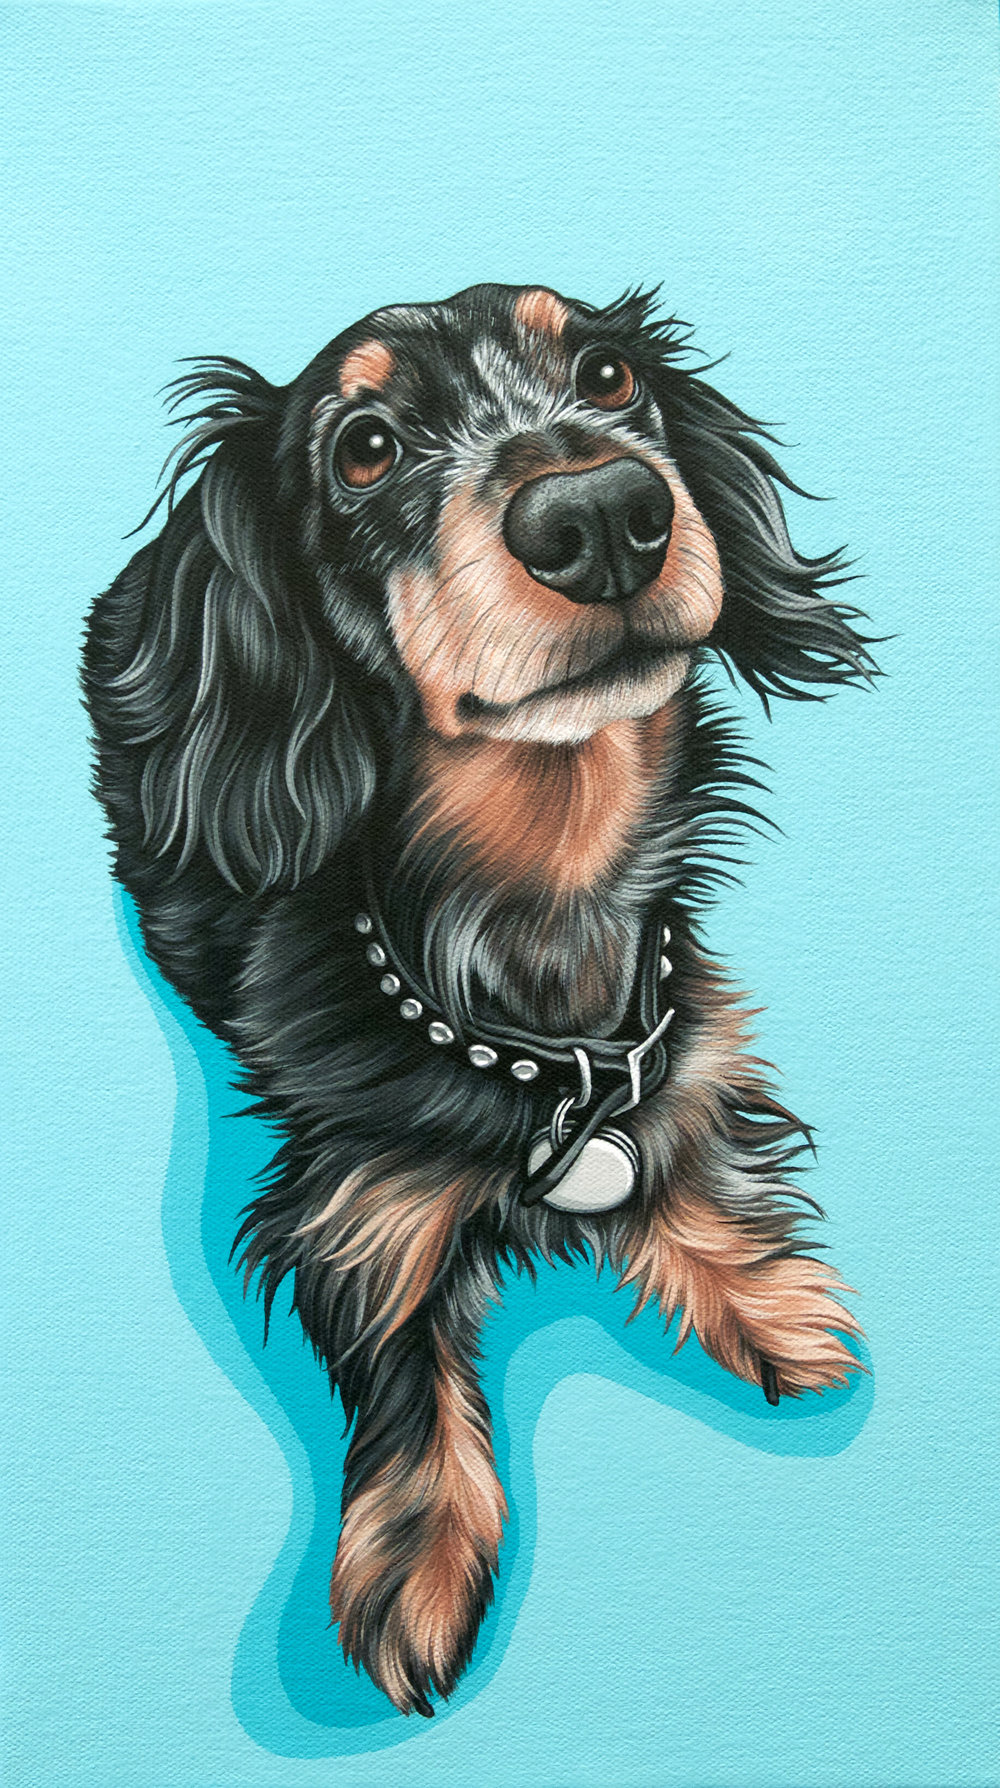 """Huey"", latex enamel on canvas, 9"" x 14"", 2017"